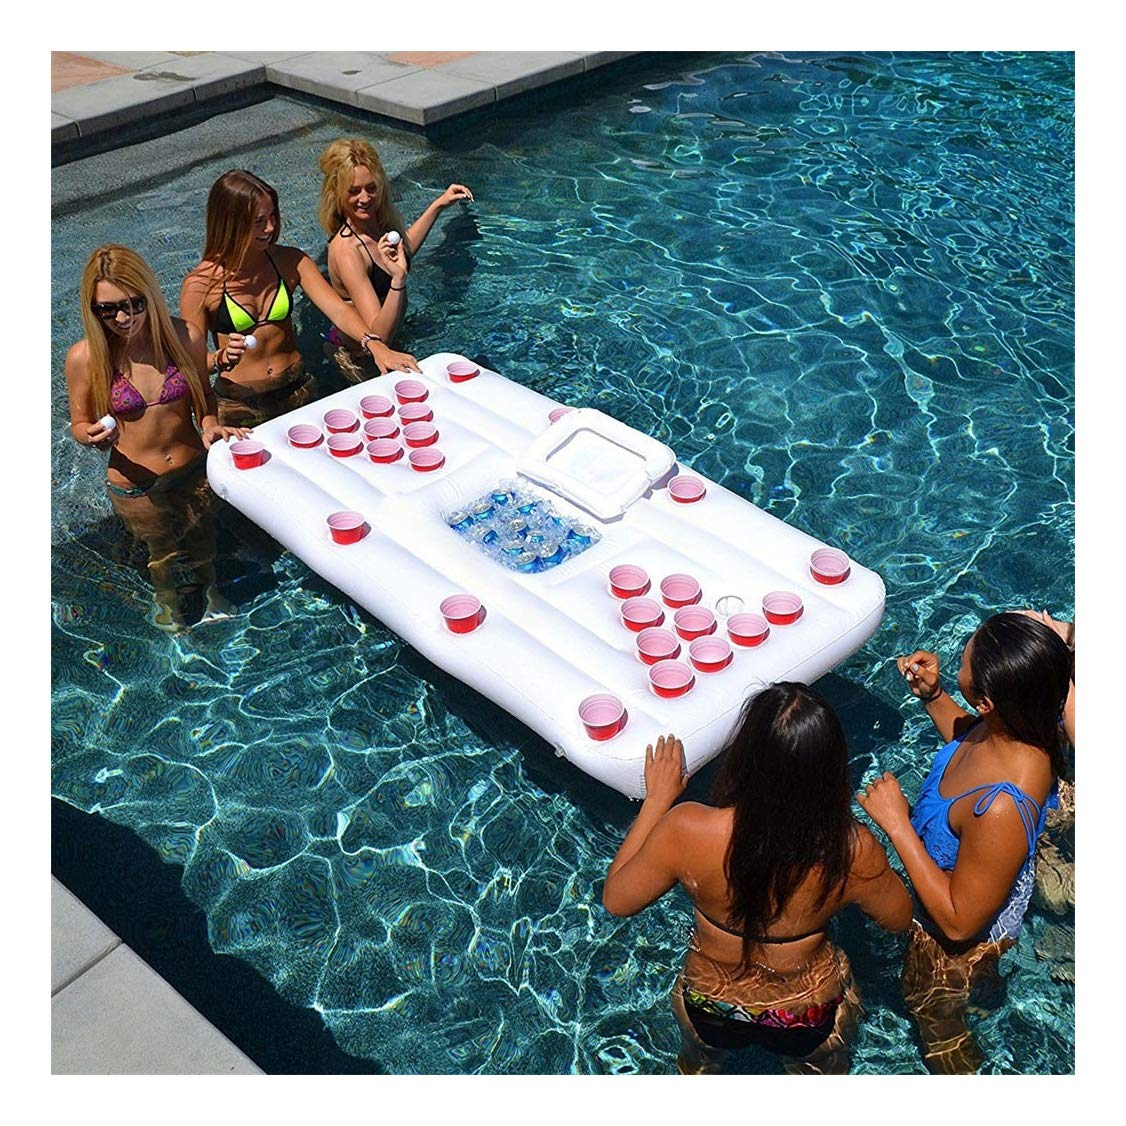 Jeeke Inflatable Serving Bar Beer 28 Cup Table Salad Ice Tray Food Drink Containers Floating Row Water Table Tennis Table Entertainment Ice Trough for Indoor Outdoor Swimming Pool Party (White - 1)